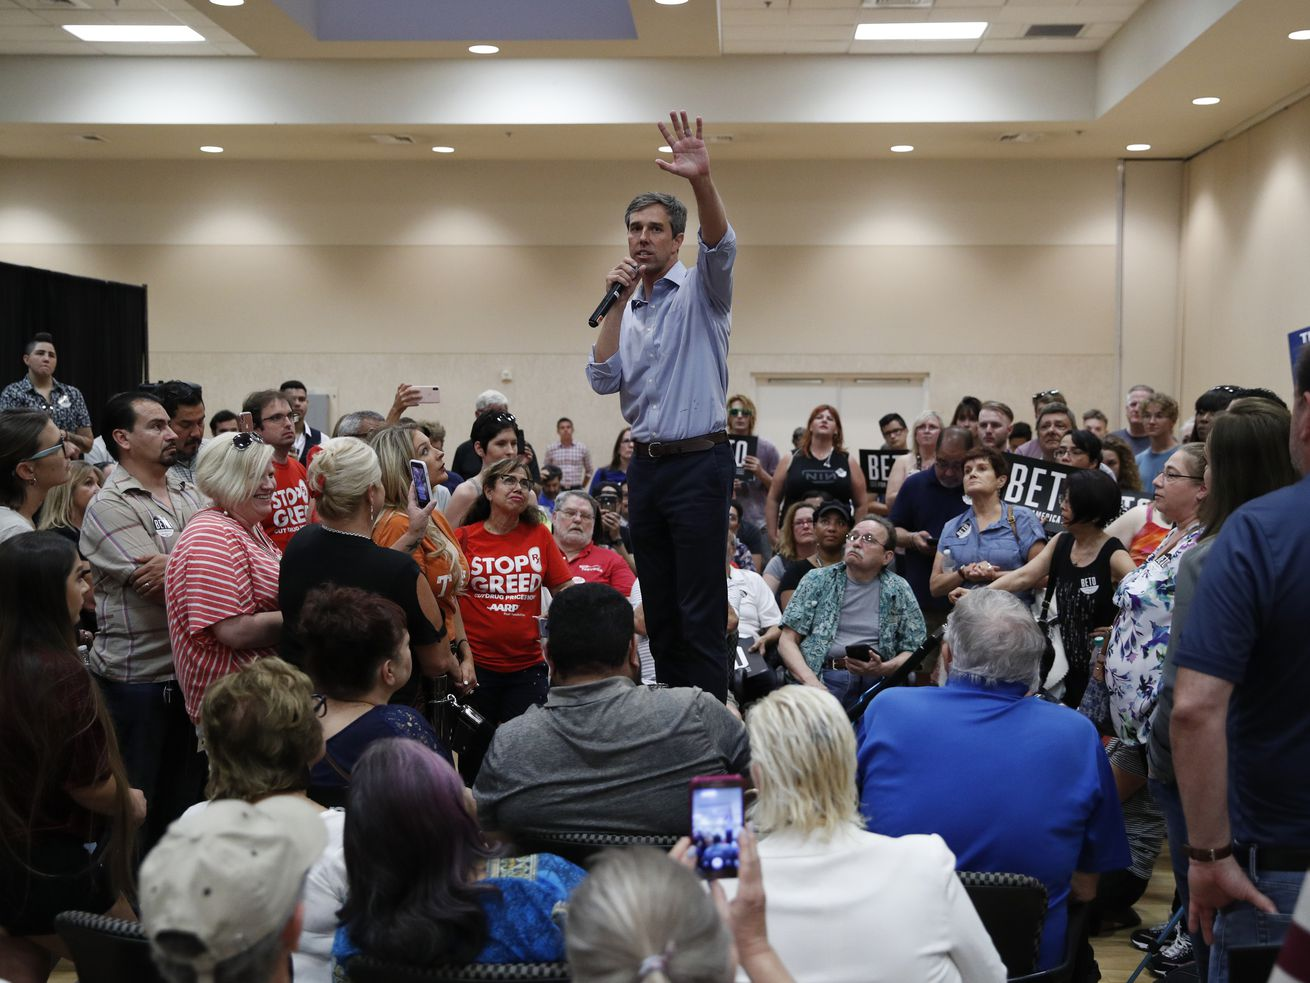 Democratic presidential candidate and former Texas U.S. Rep. Beto O'Rourke speaks at a campaign event, Thursday, Aug. 1, 2019, in Las Vegas. (AP Photo/John Locher)